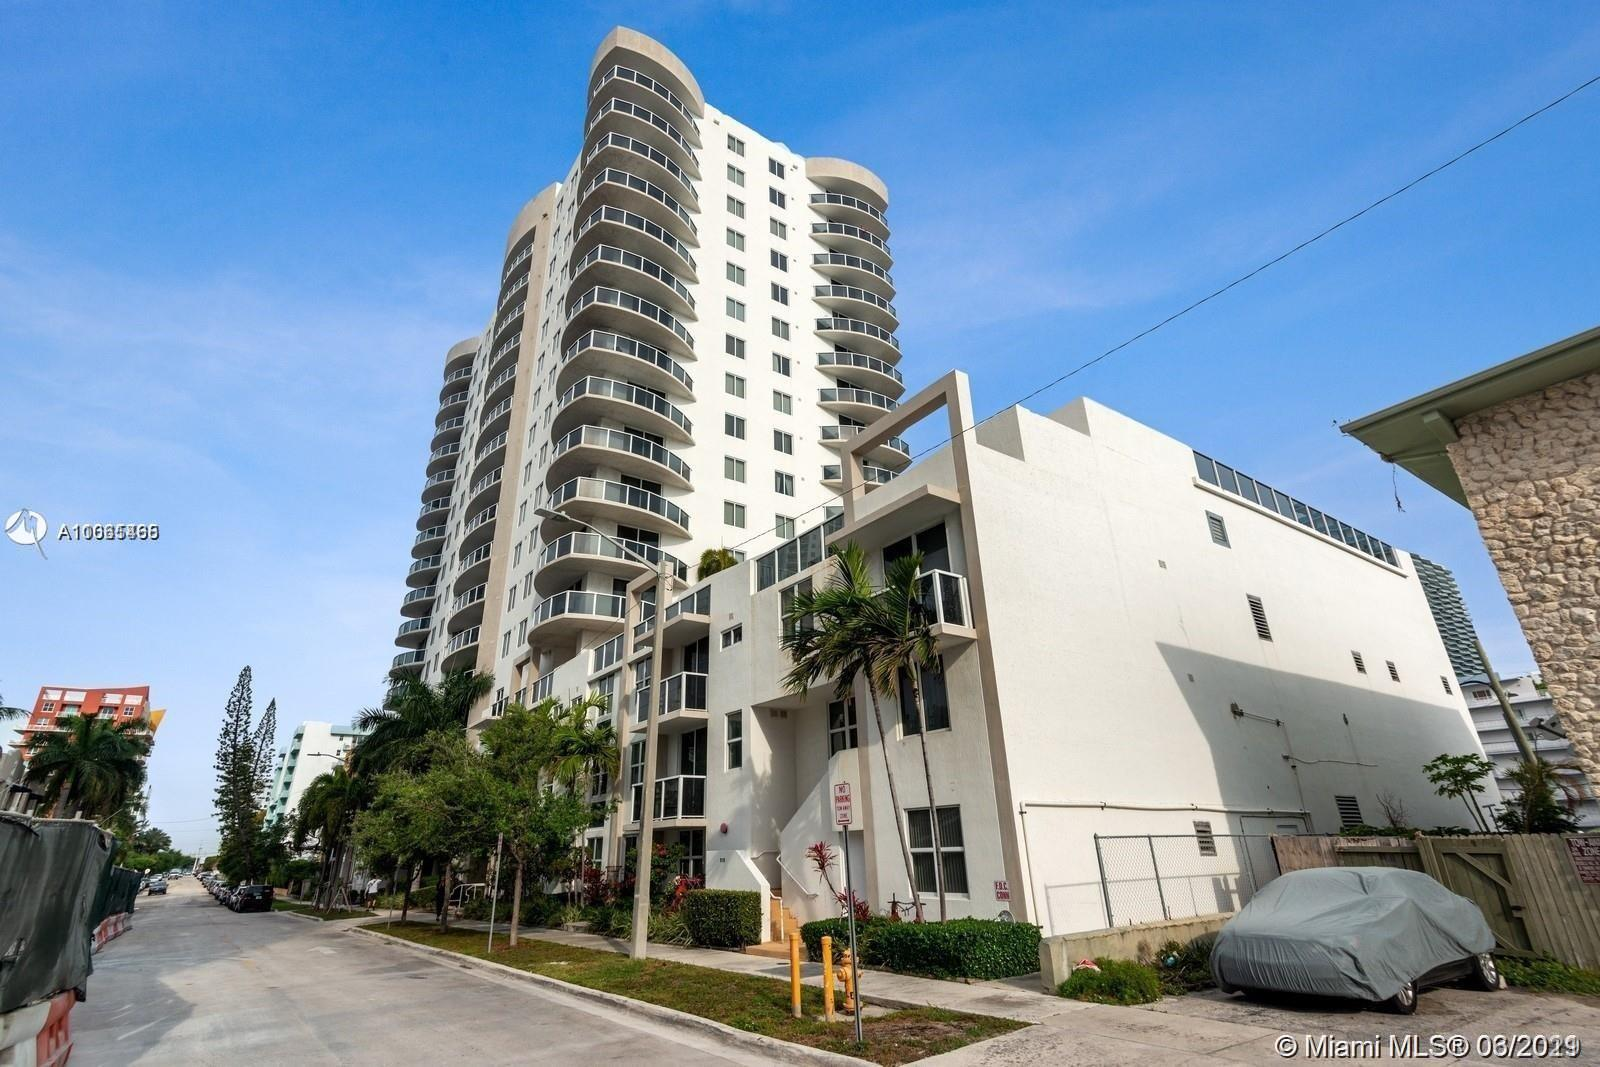 COME LIVE IN THE HEART OF MIAMI EDGEWATER AREA IN A BEAUTIFUL LIVE/WORK SPACE.UNIT HAS NO BALCONY. EASY TO SHOW.